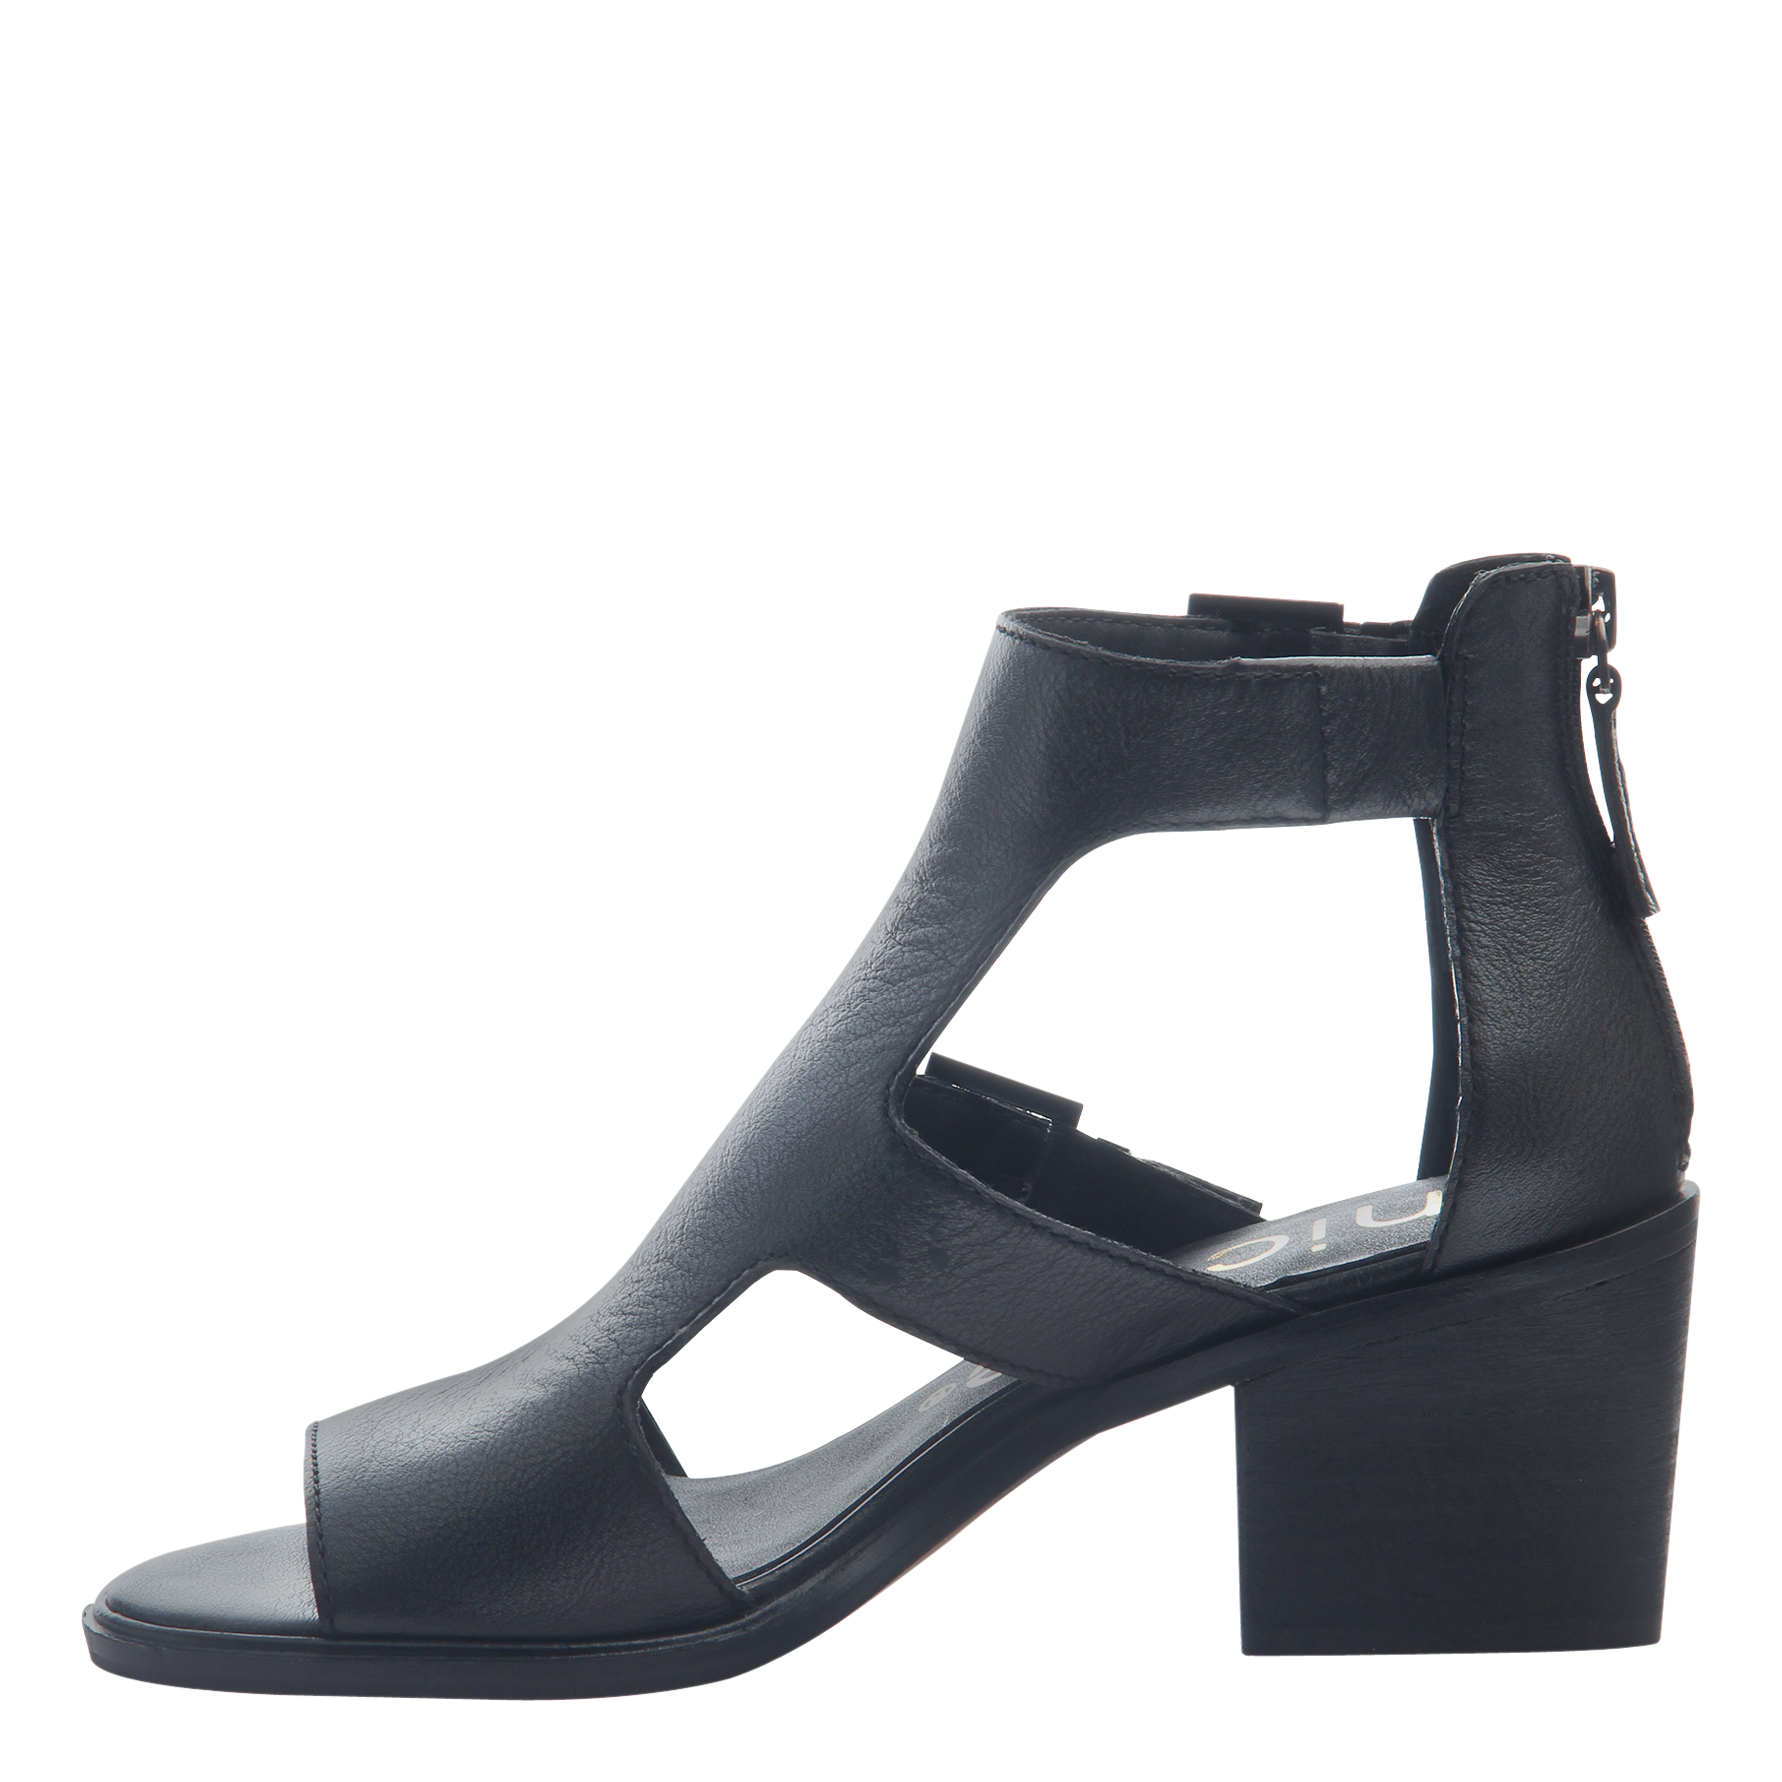 Womens heeled sandals Jahida in black inside view